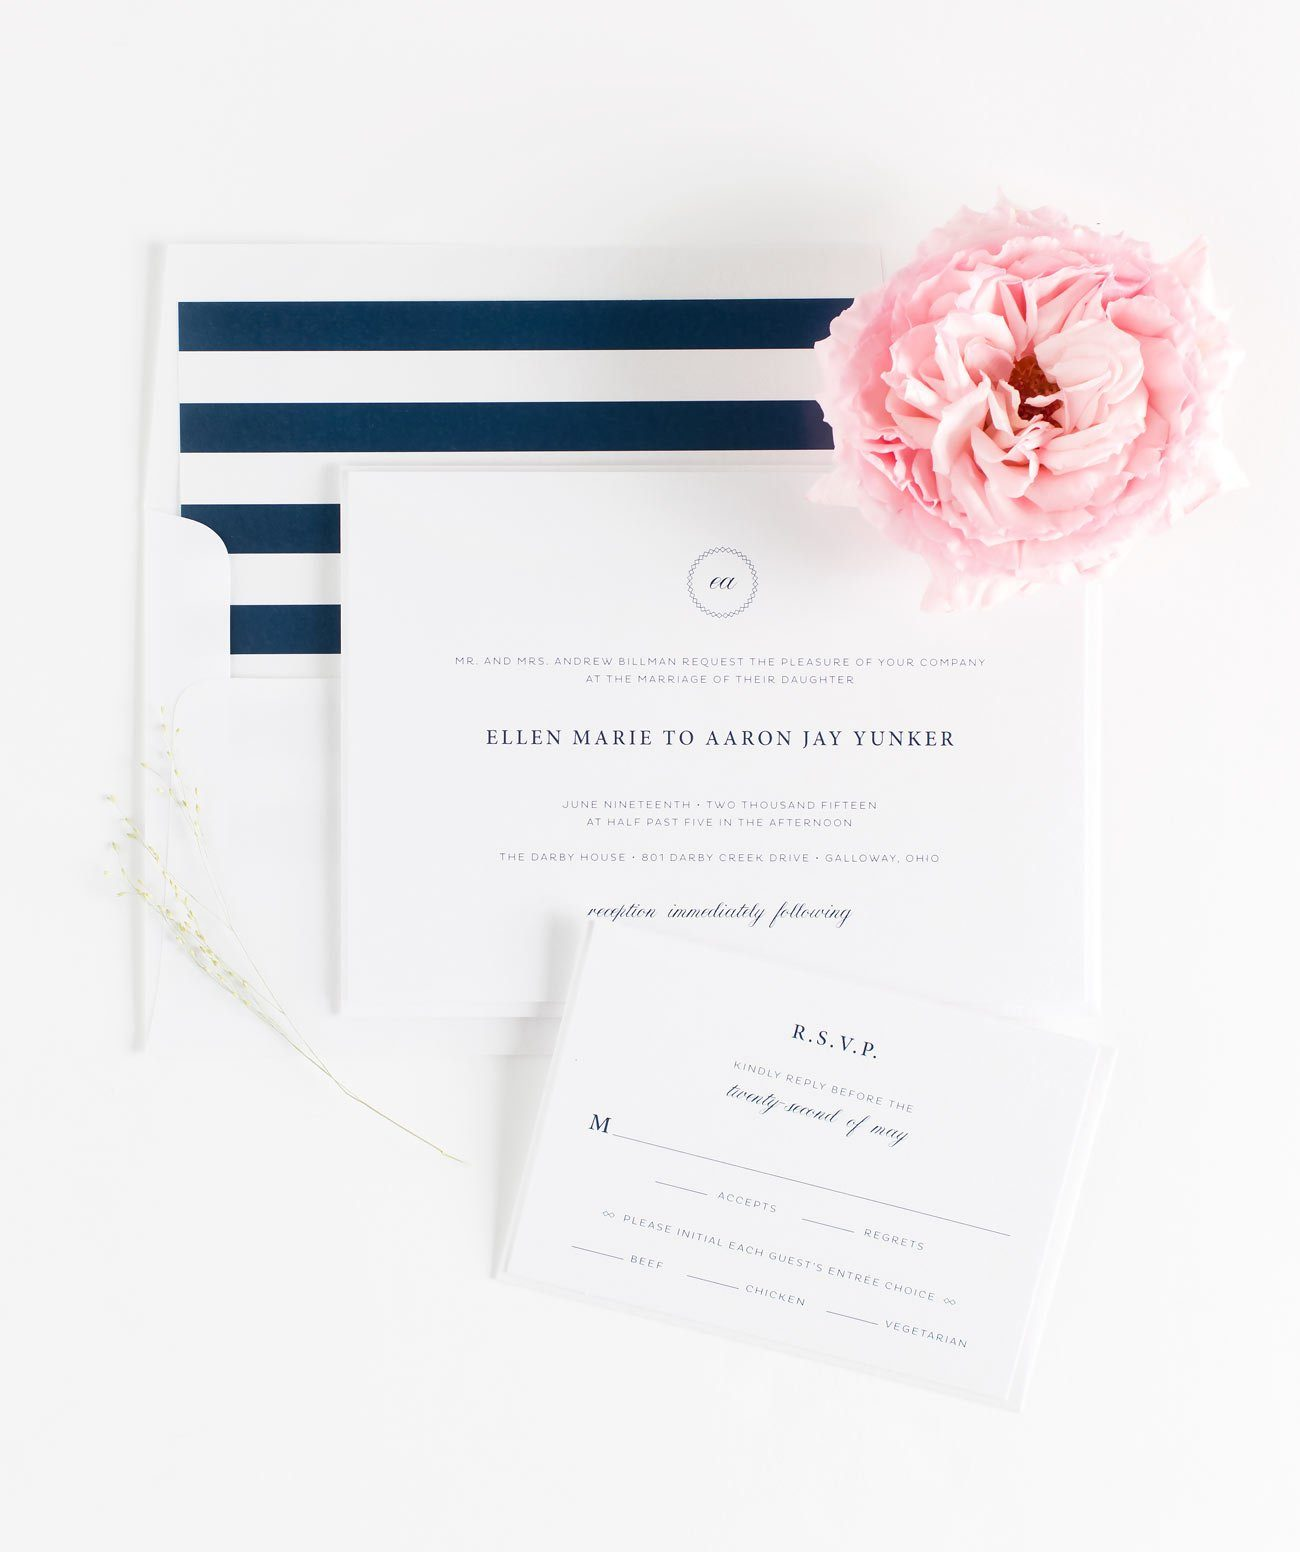 Vintage and Elegant Wedding Invitations in Navy Blue